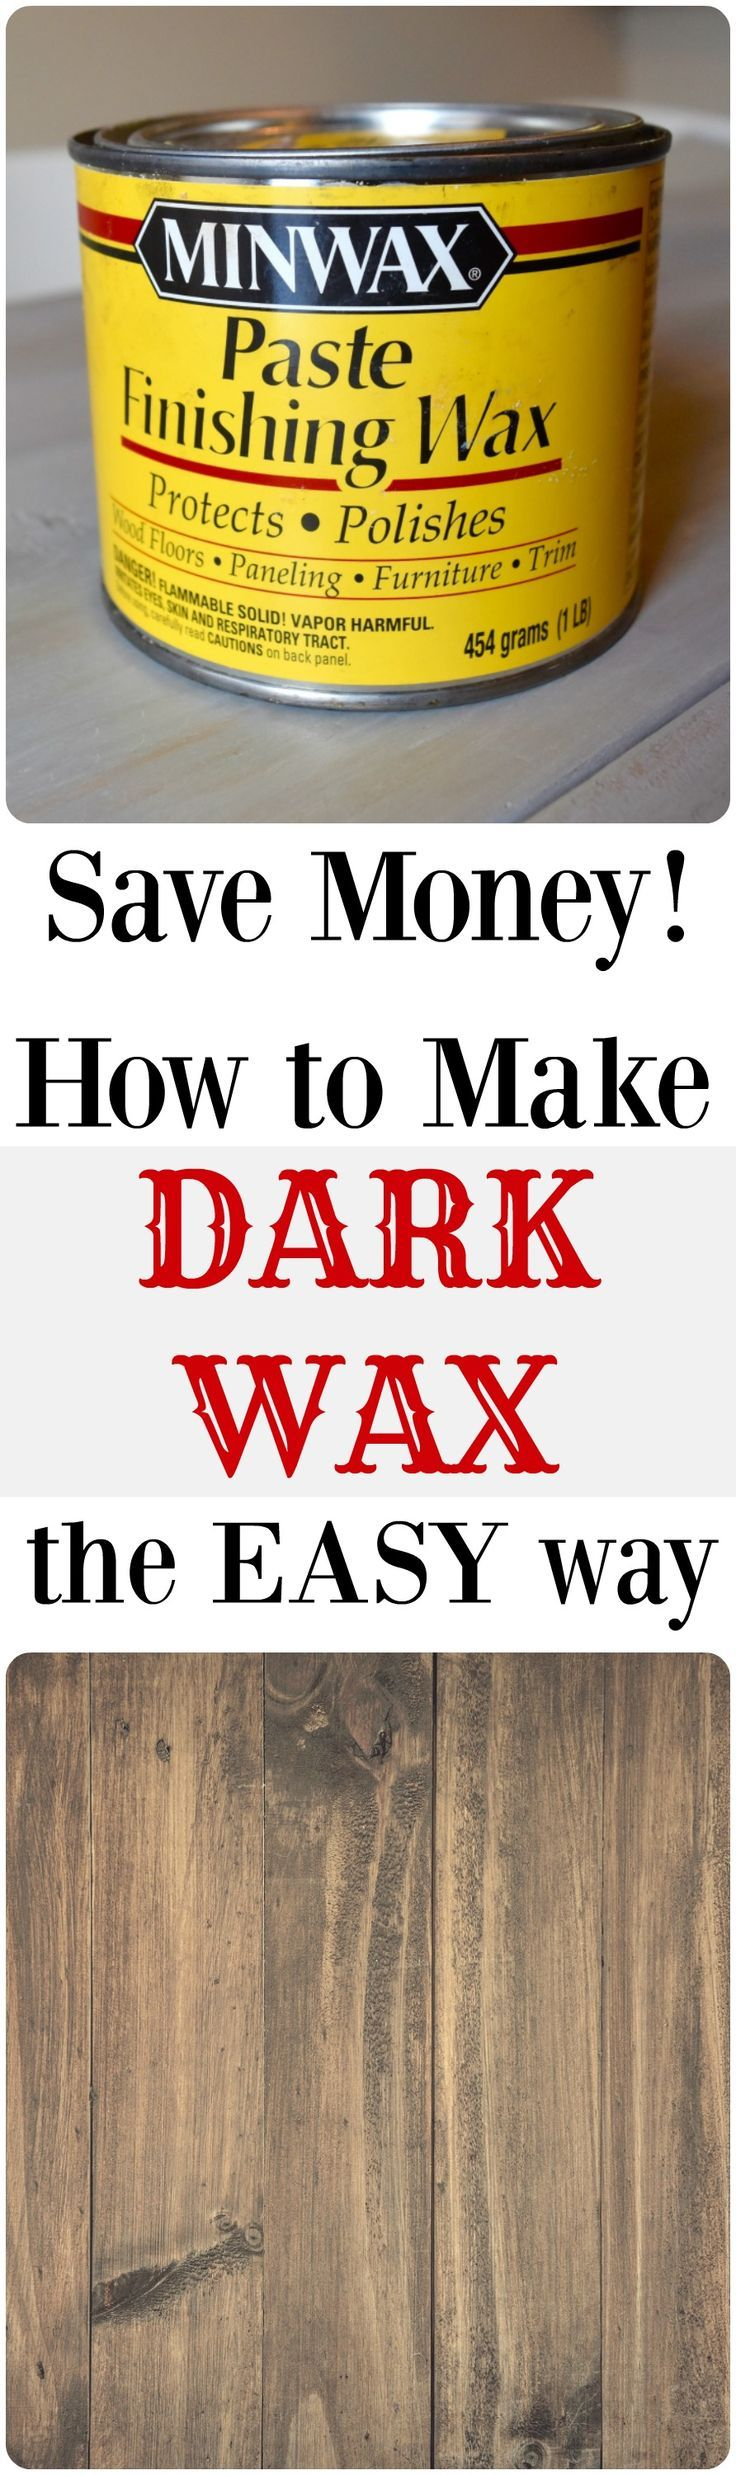 How to make dark wax. DIY. Use a microwave, stain and clear wax to make your own dark wax. Save money and DIY.